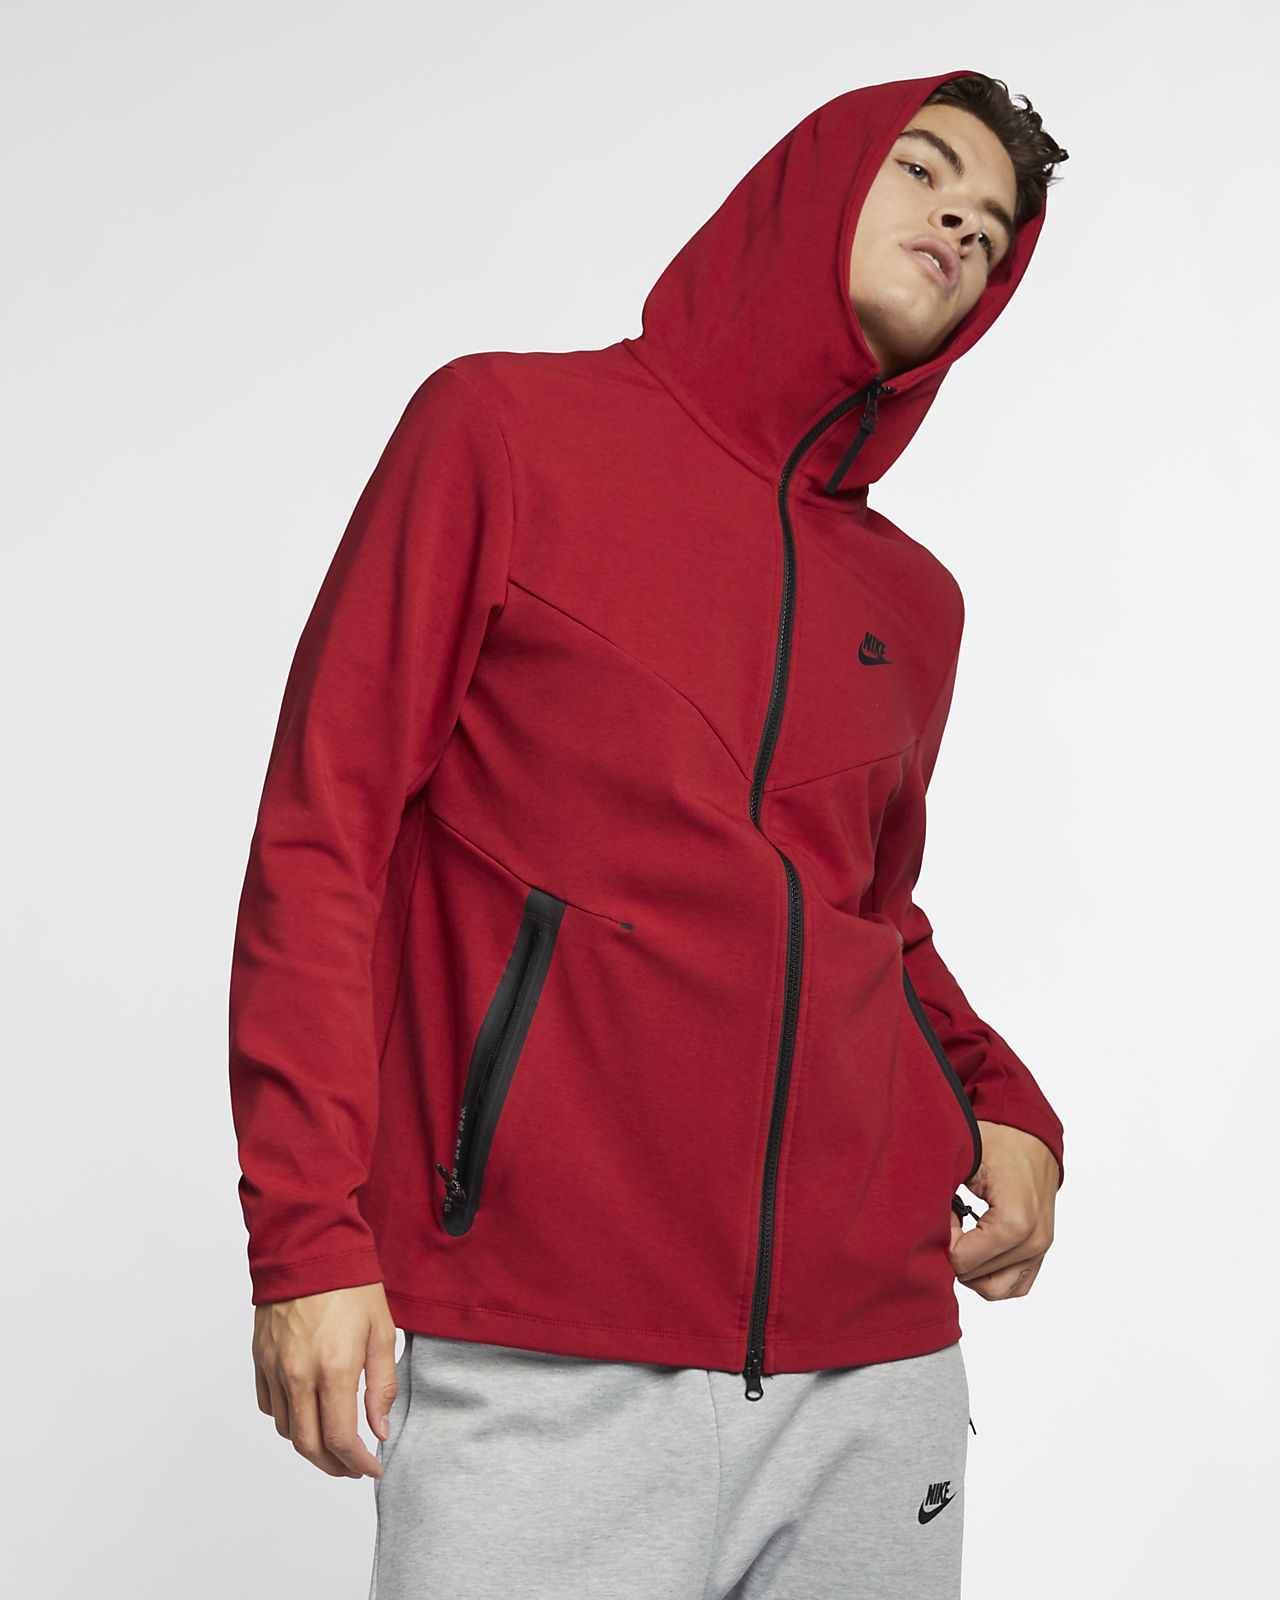 Nike Sportswear Tech Pack Men s Full-Zip Hoodie. Nike.com 718eead72